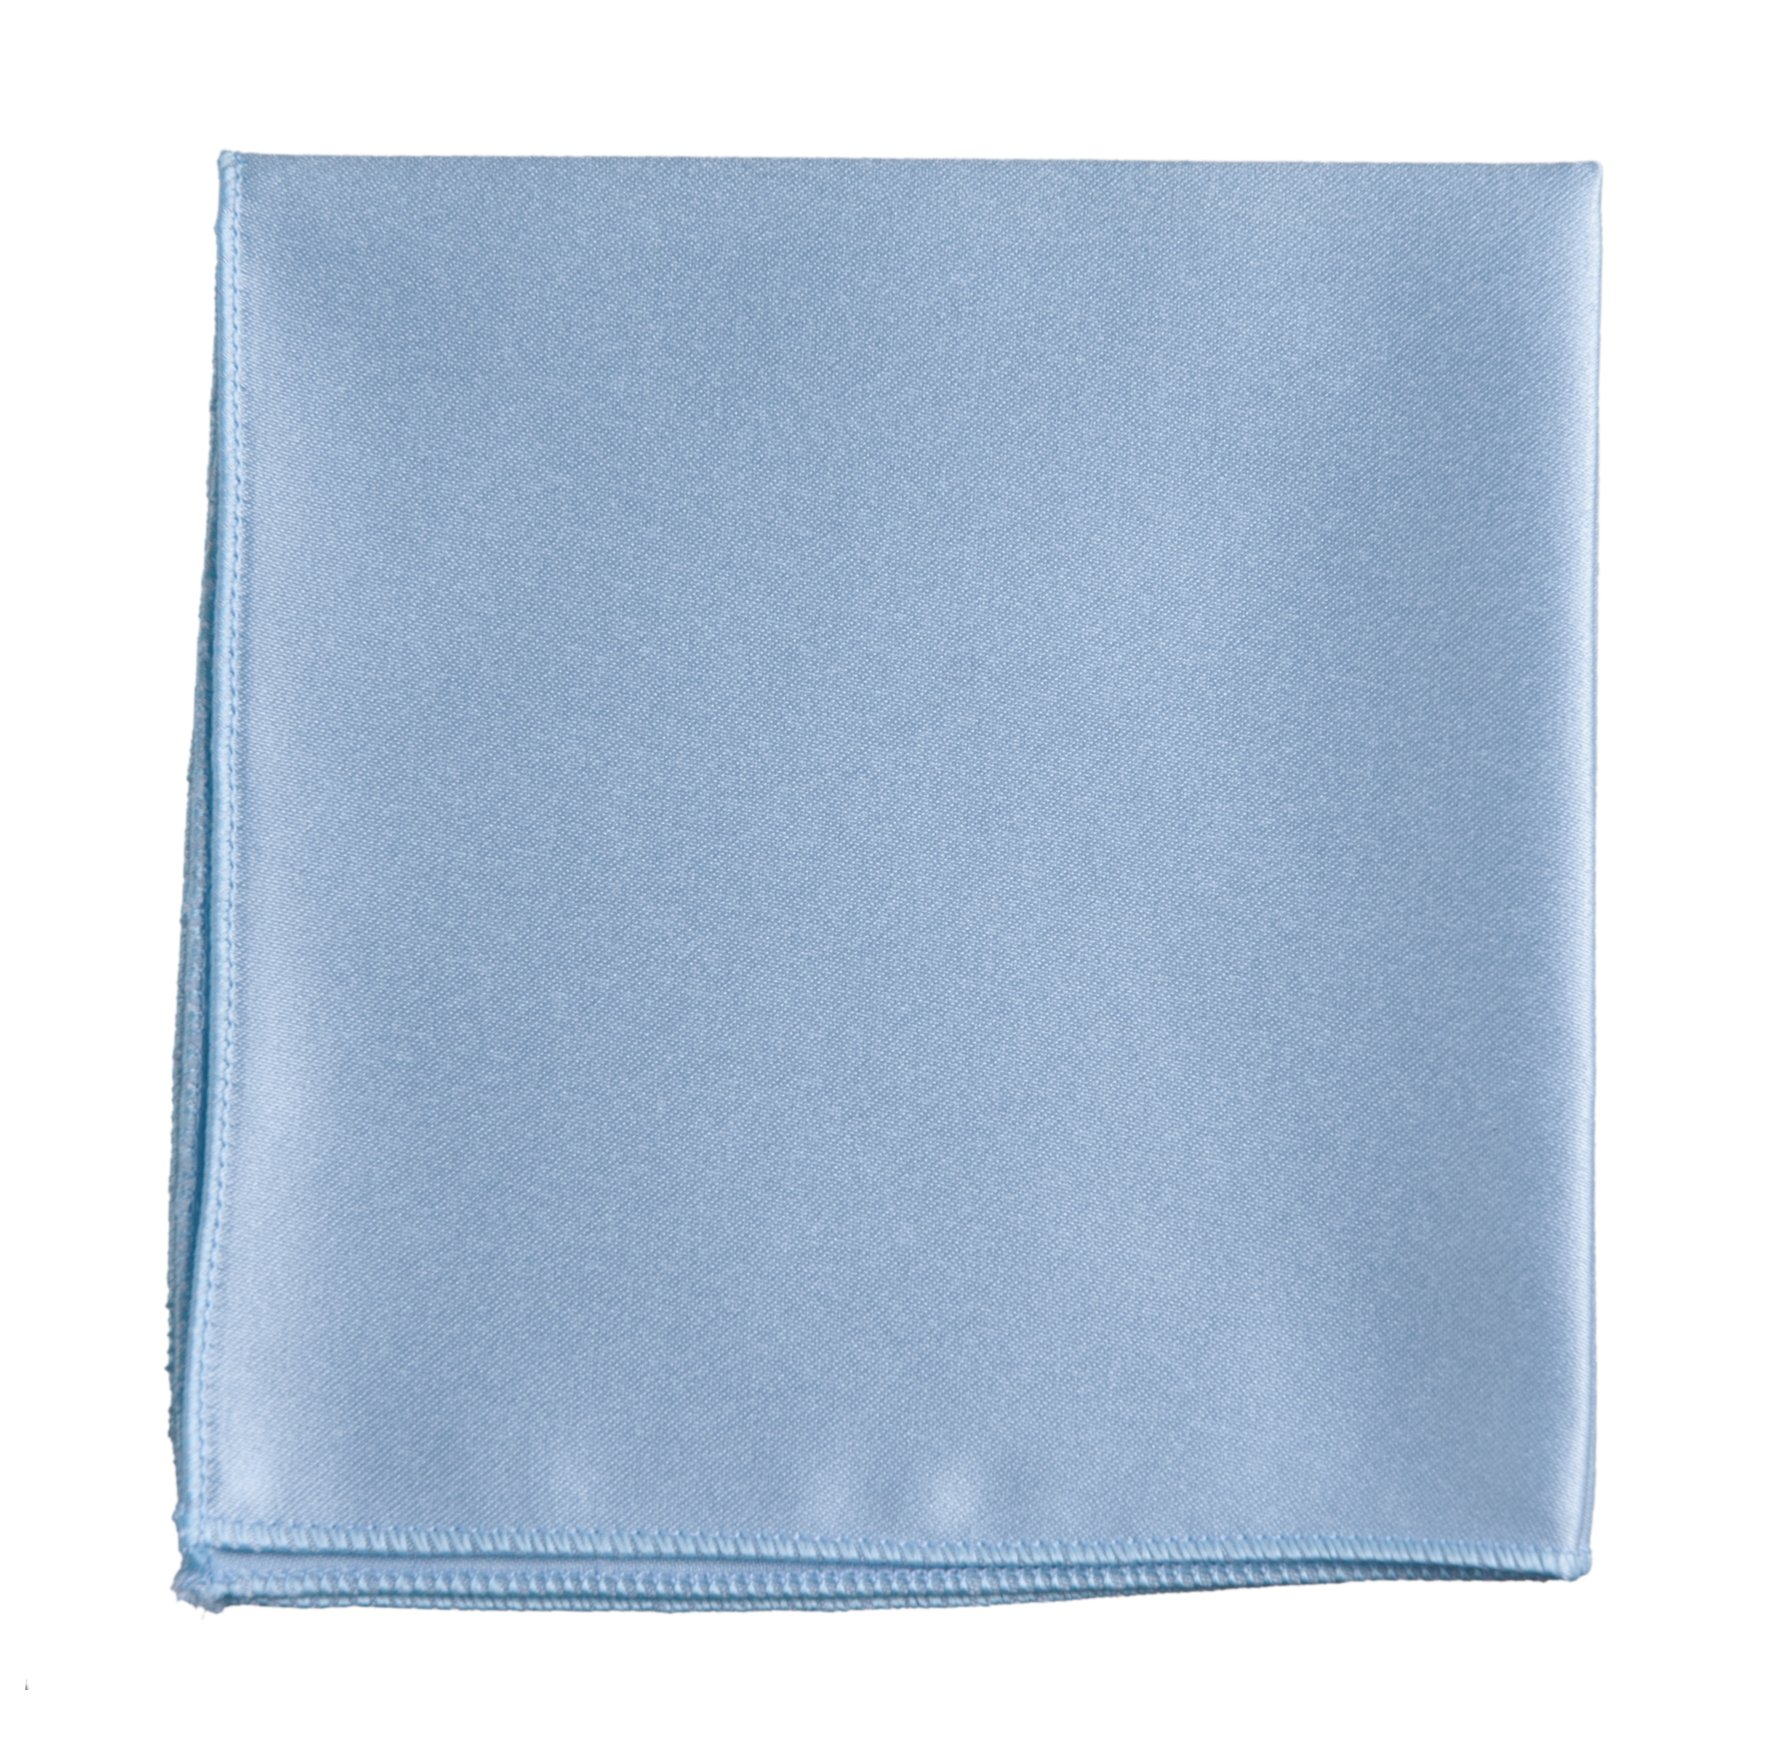 f513d2f464112 Pocket Square Hanky in Solid Colors Sized for Boys and Men By Tuxedo Park  product image